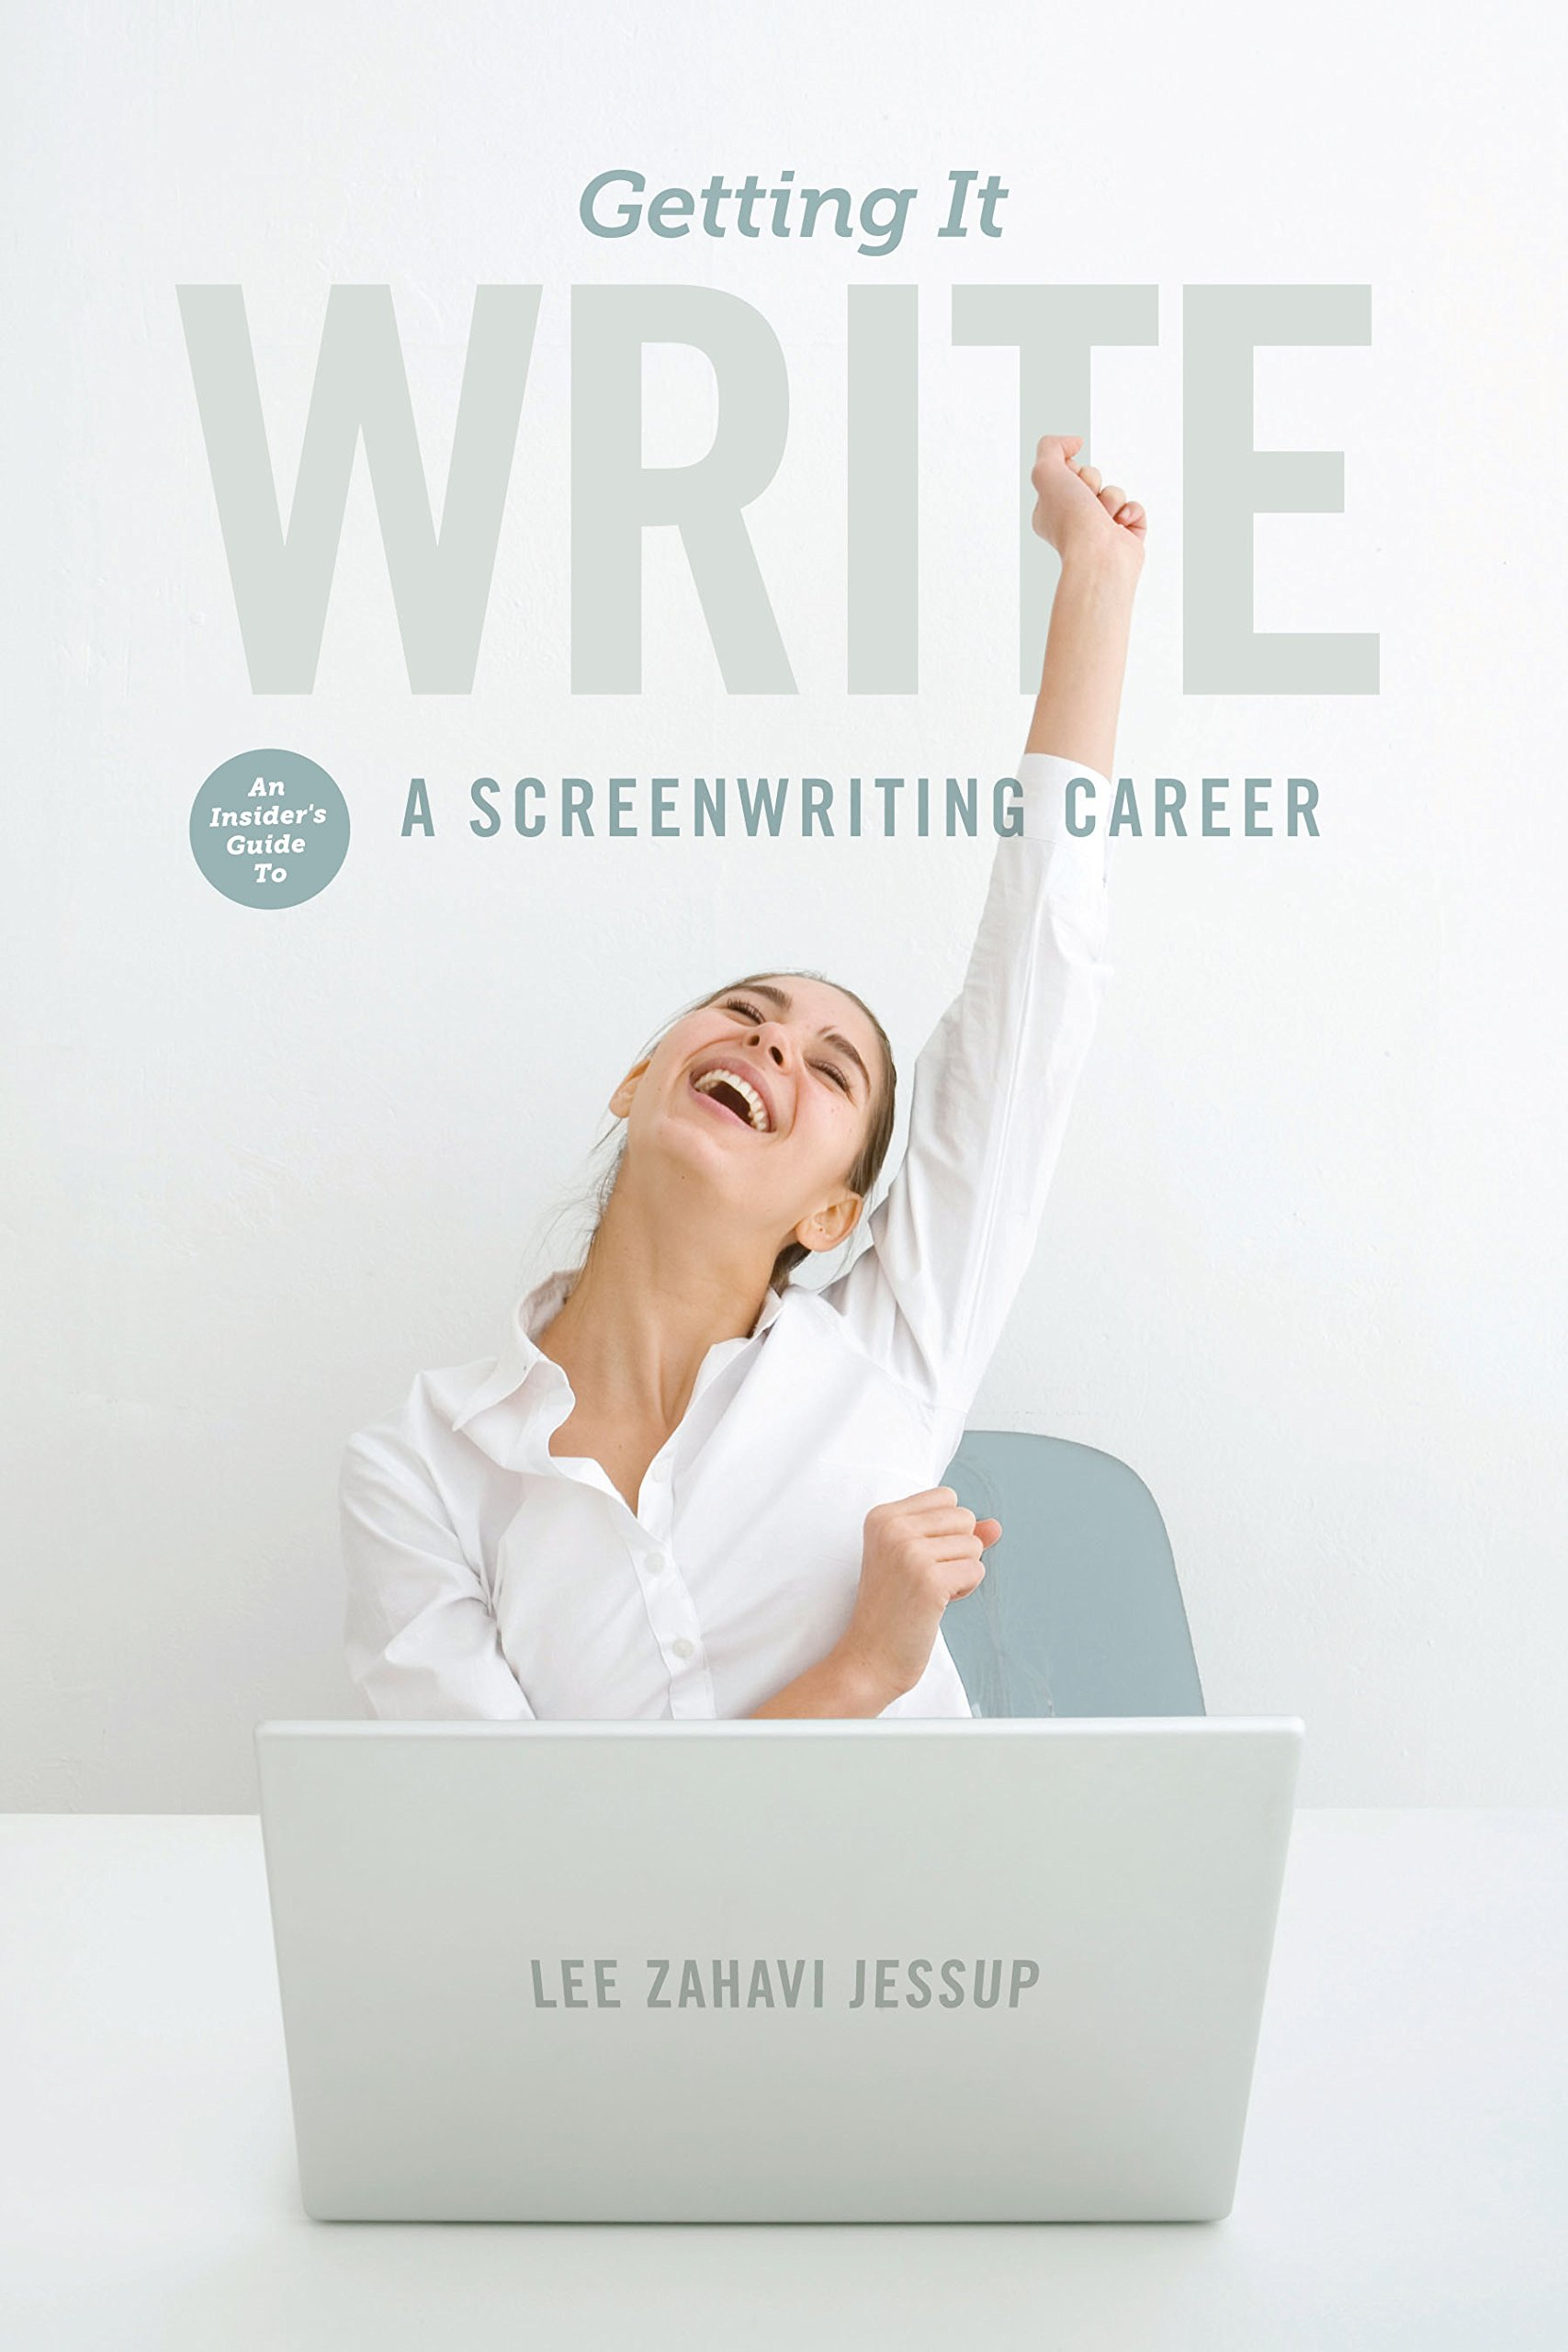 Getting it Write: An Insider's Guide to a Screenwriting Career PDF